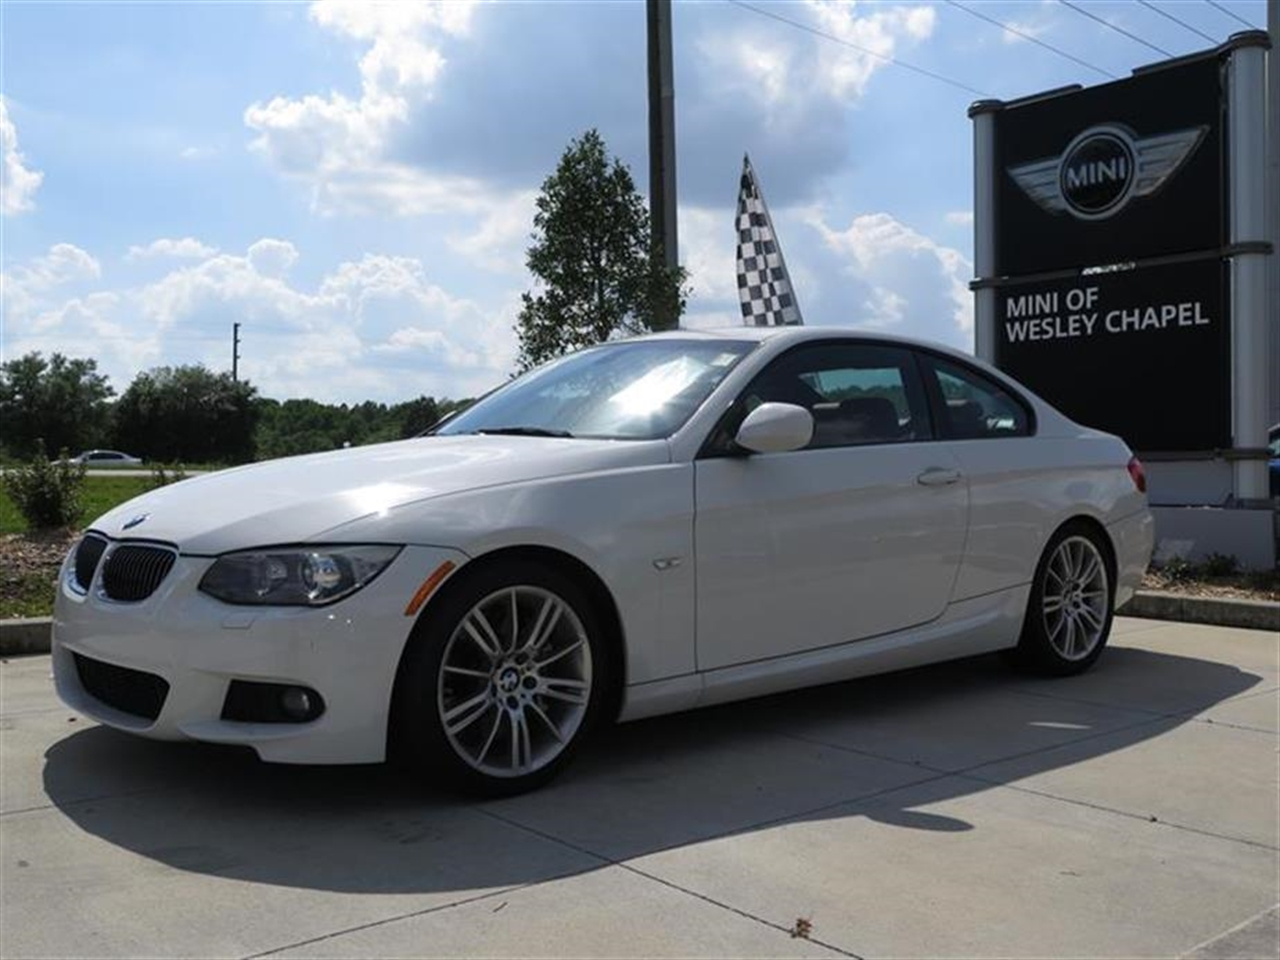 2012 BMW 3 SERIES 2dr Cpe 335i RWD 16136 miles 3-spoke leather-wrapped multi-function sport steeri